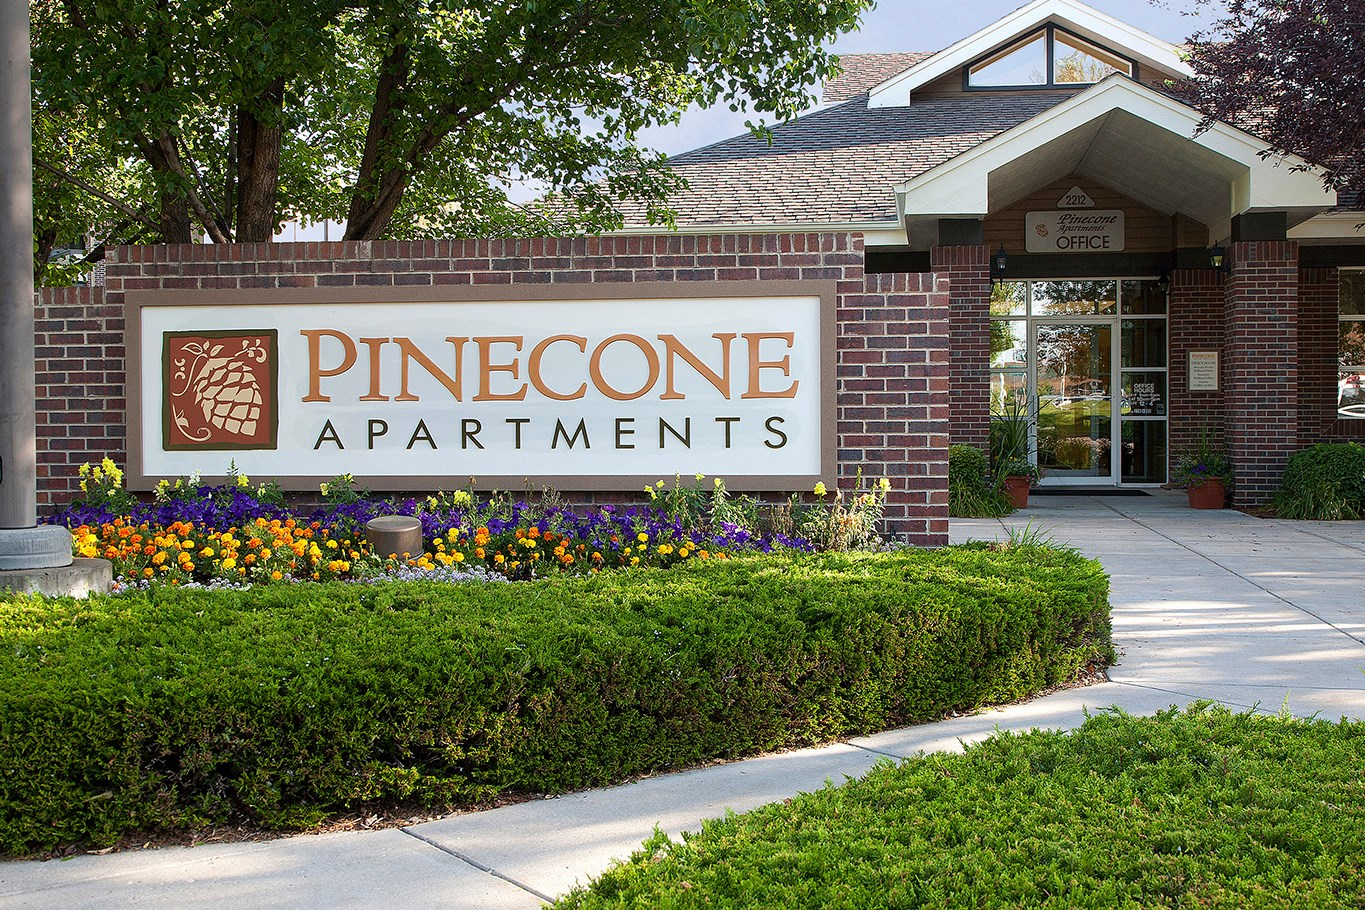 Sign at Pinecone Apartments in Fort Collins, CO